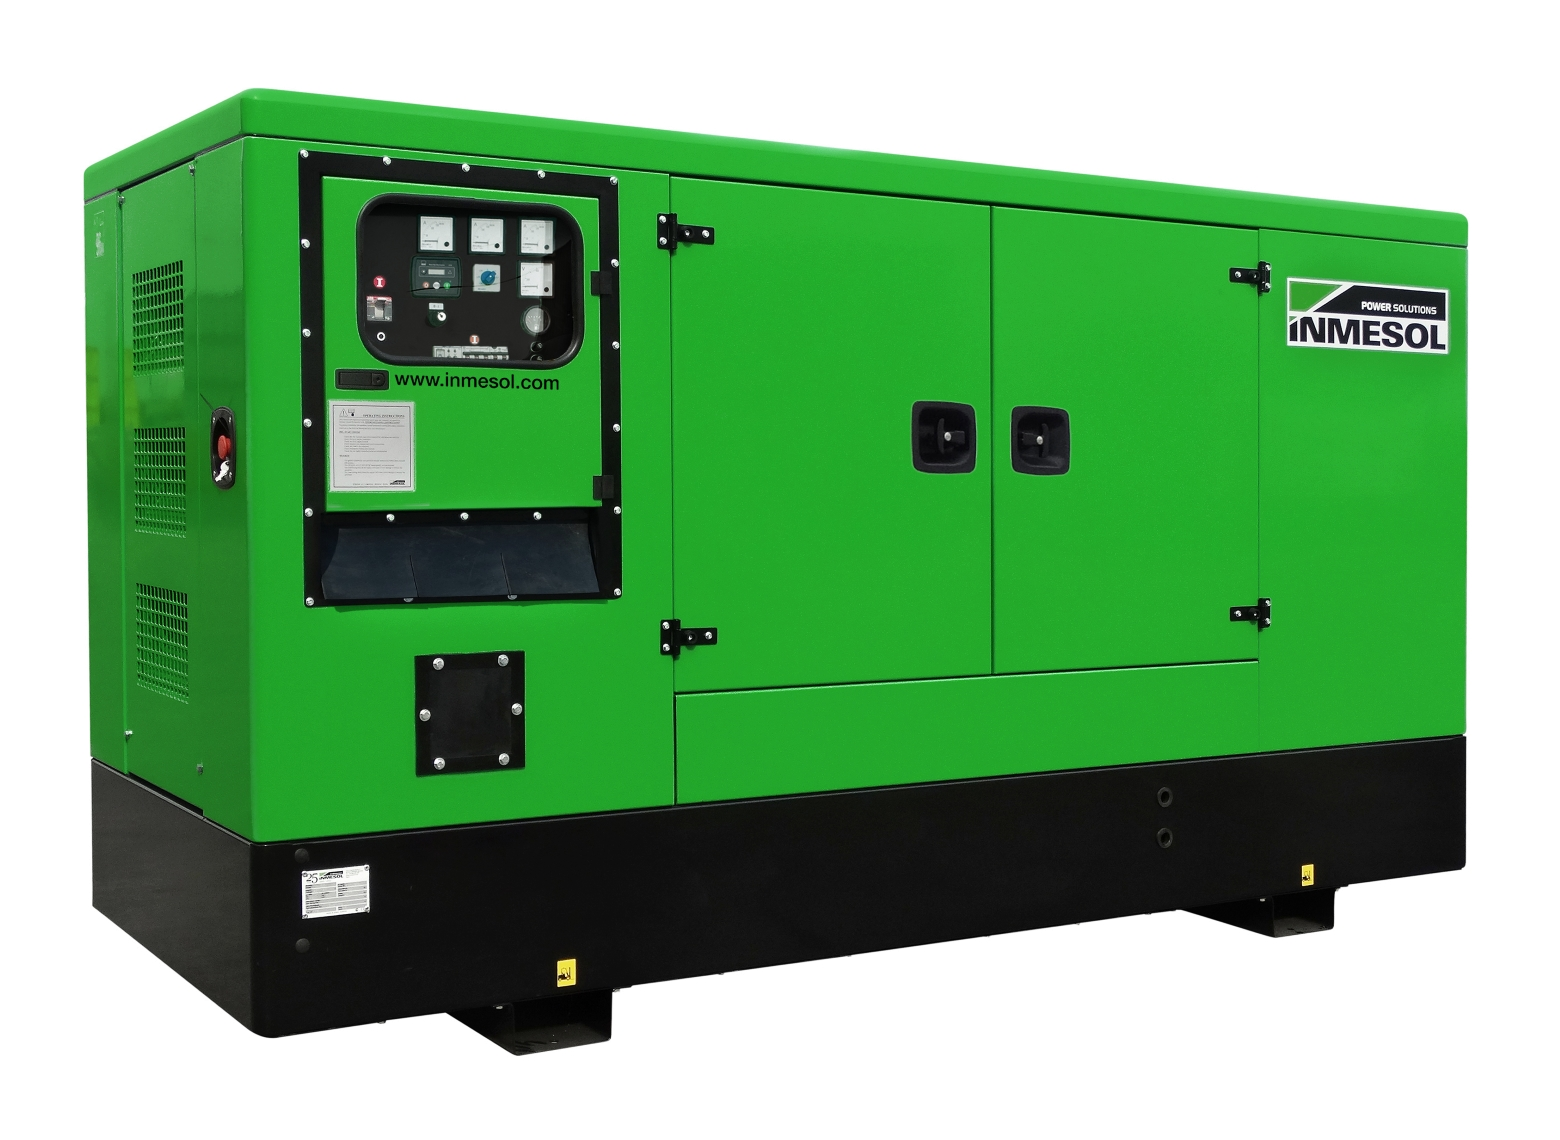 Generator with manual control panel.II-083 - FPT - N45SM2A - 1.500 R.P.M. | 50 Hz